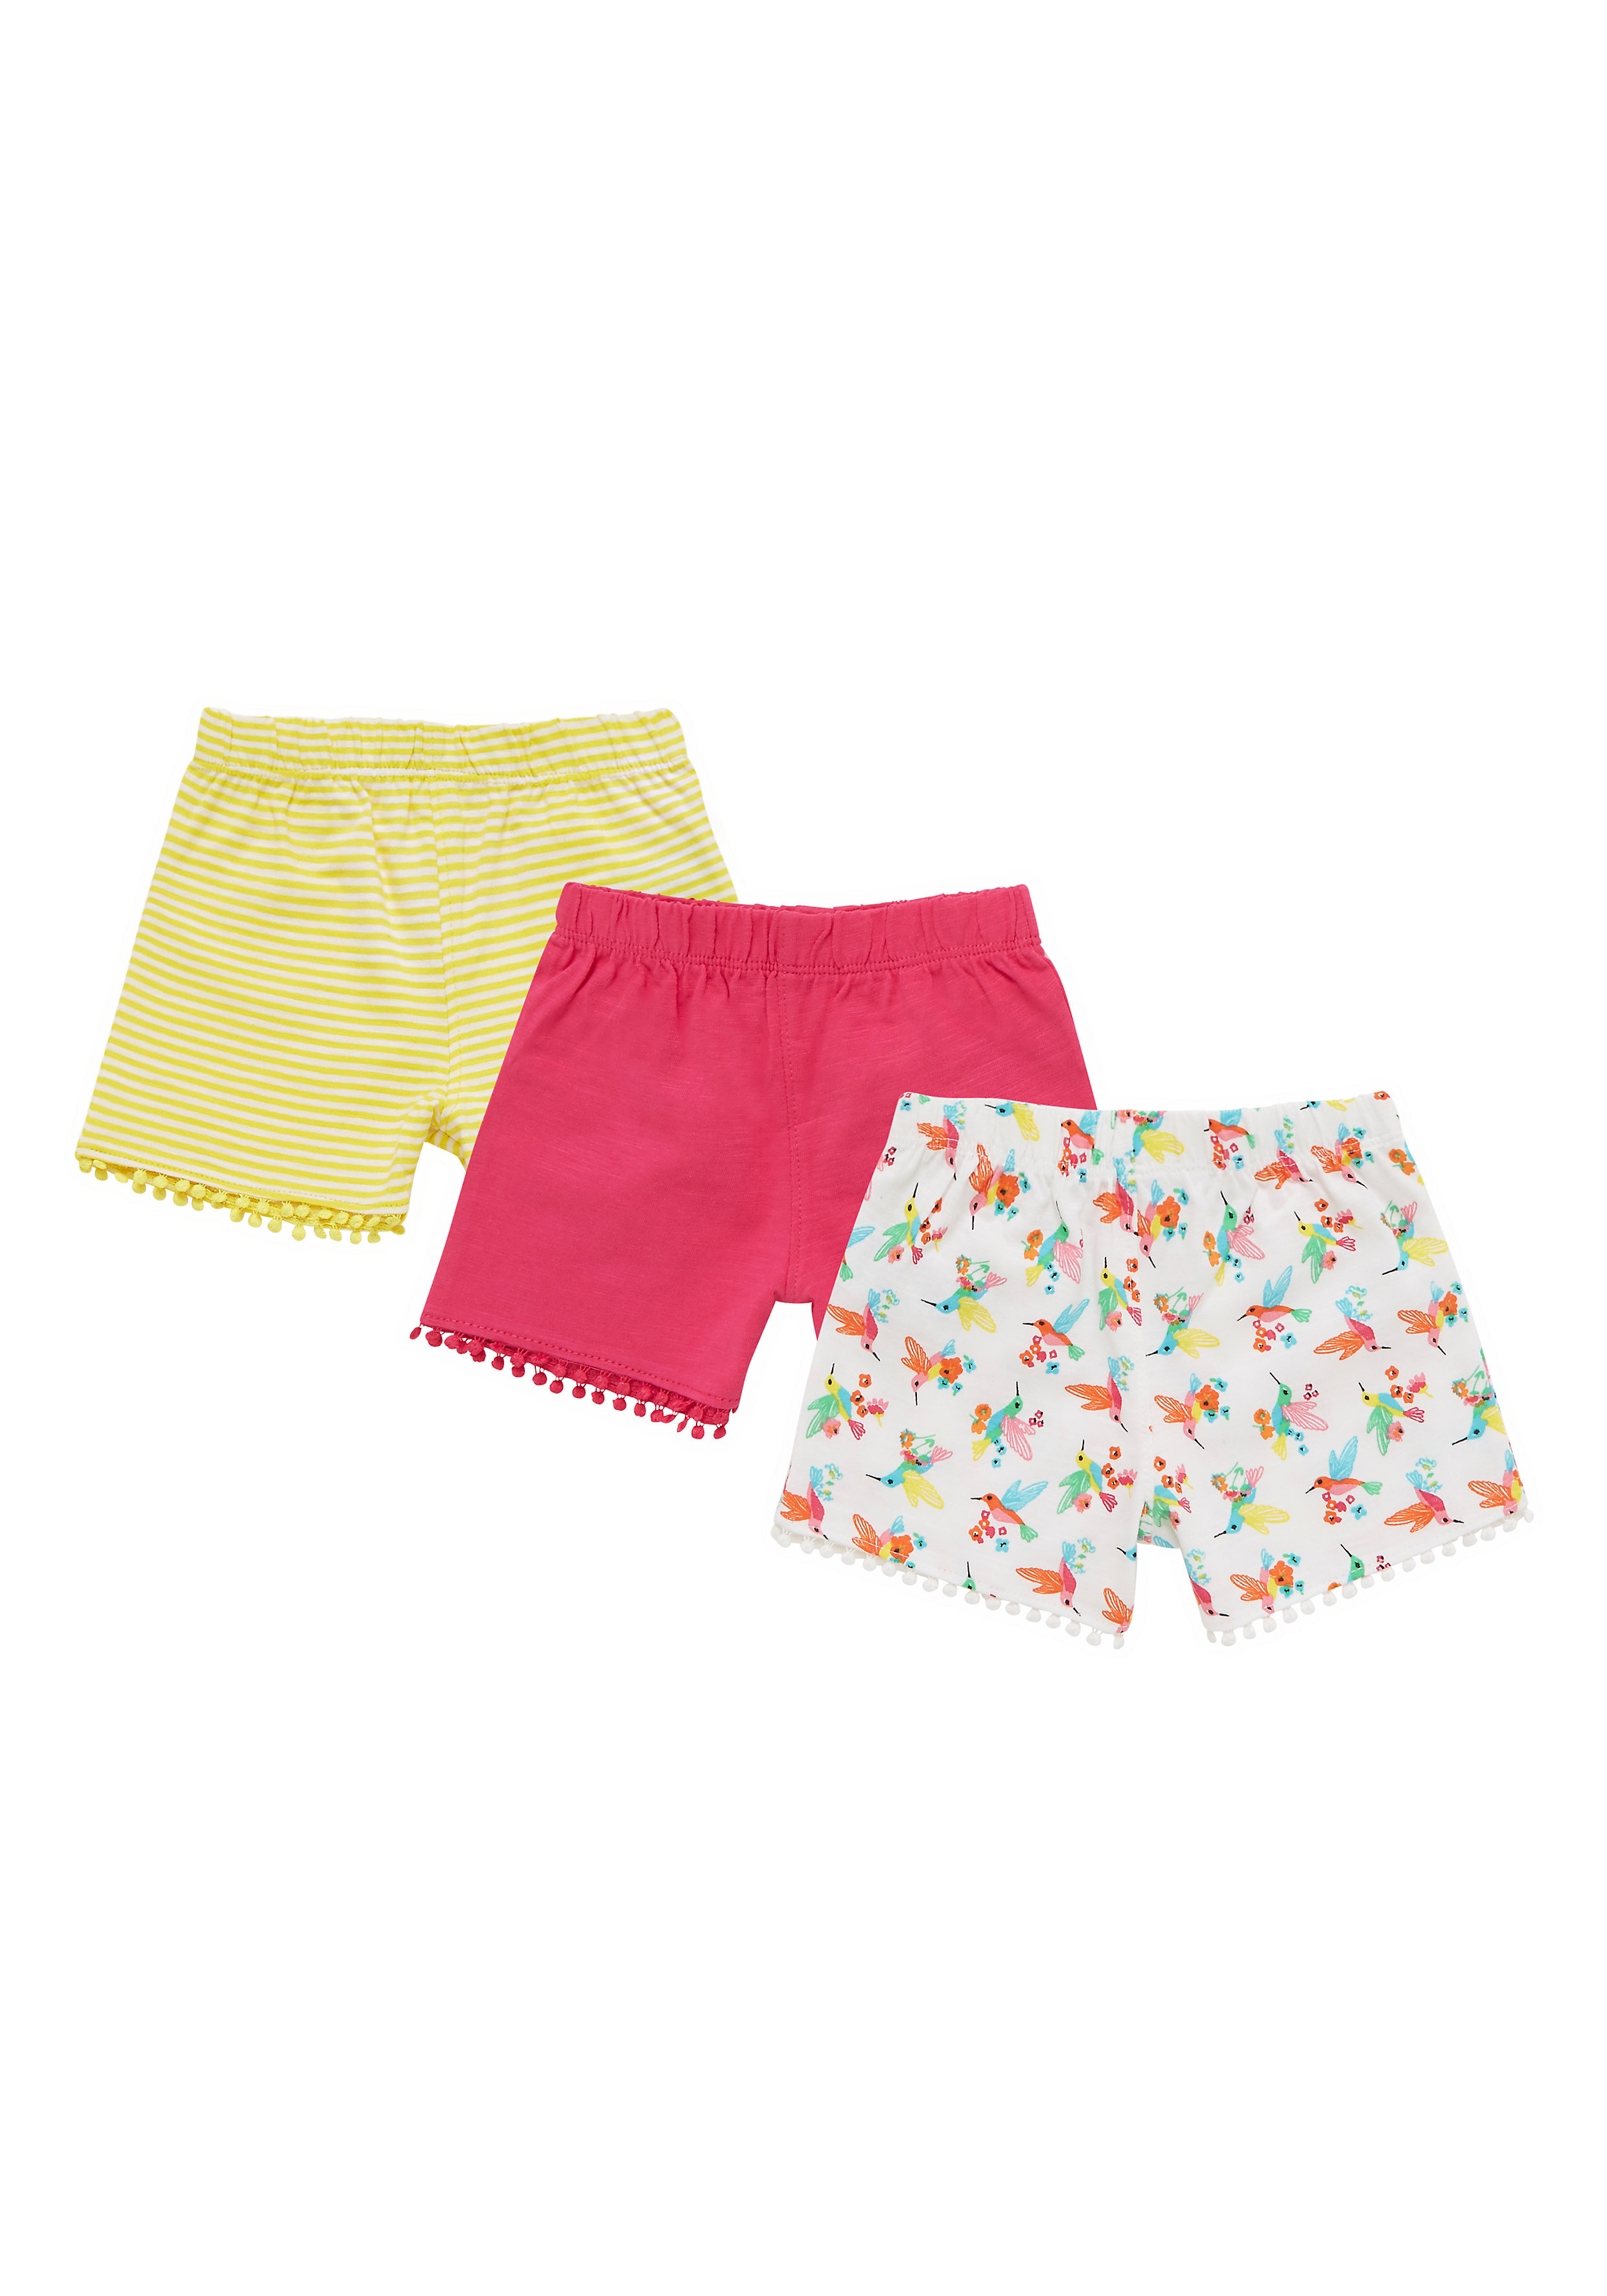 Mothercare | Girls Hummingbird, Pink And Striped Shorts - Pack Of 3